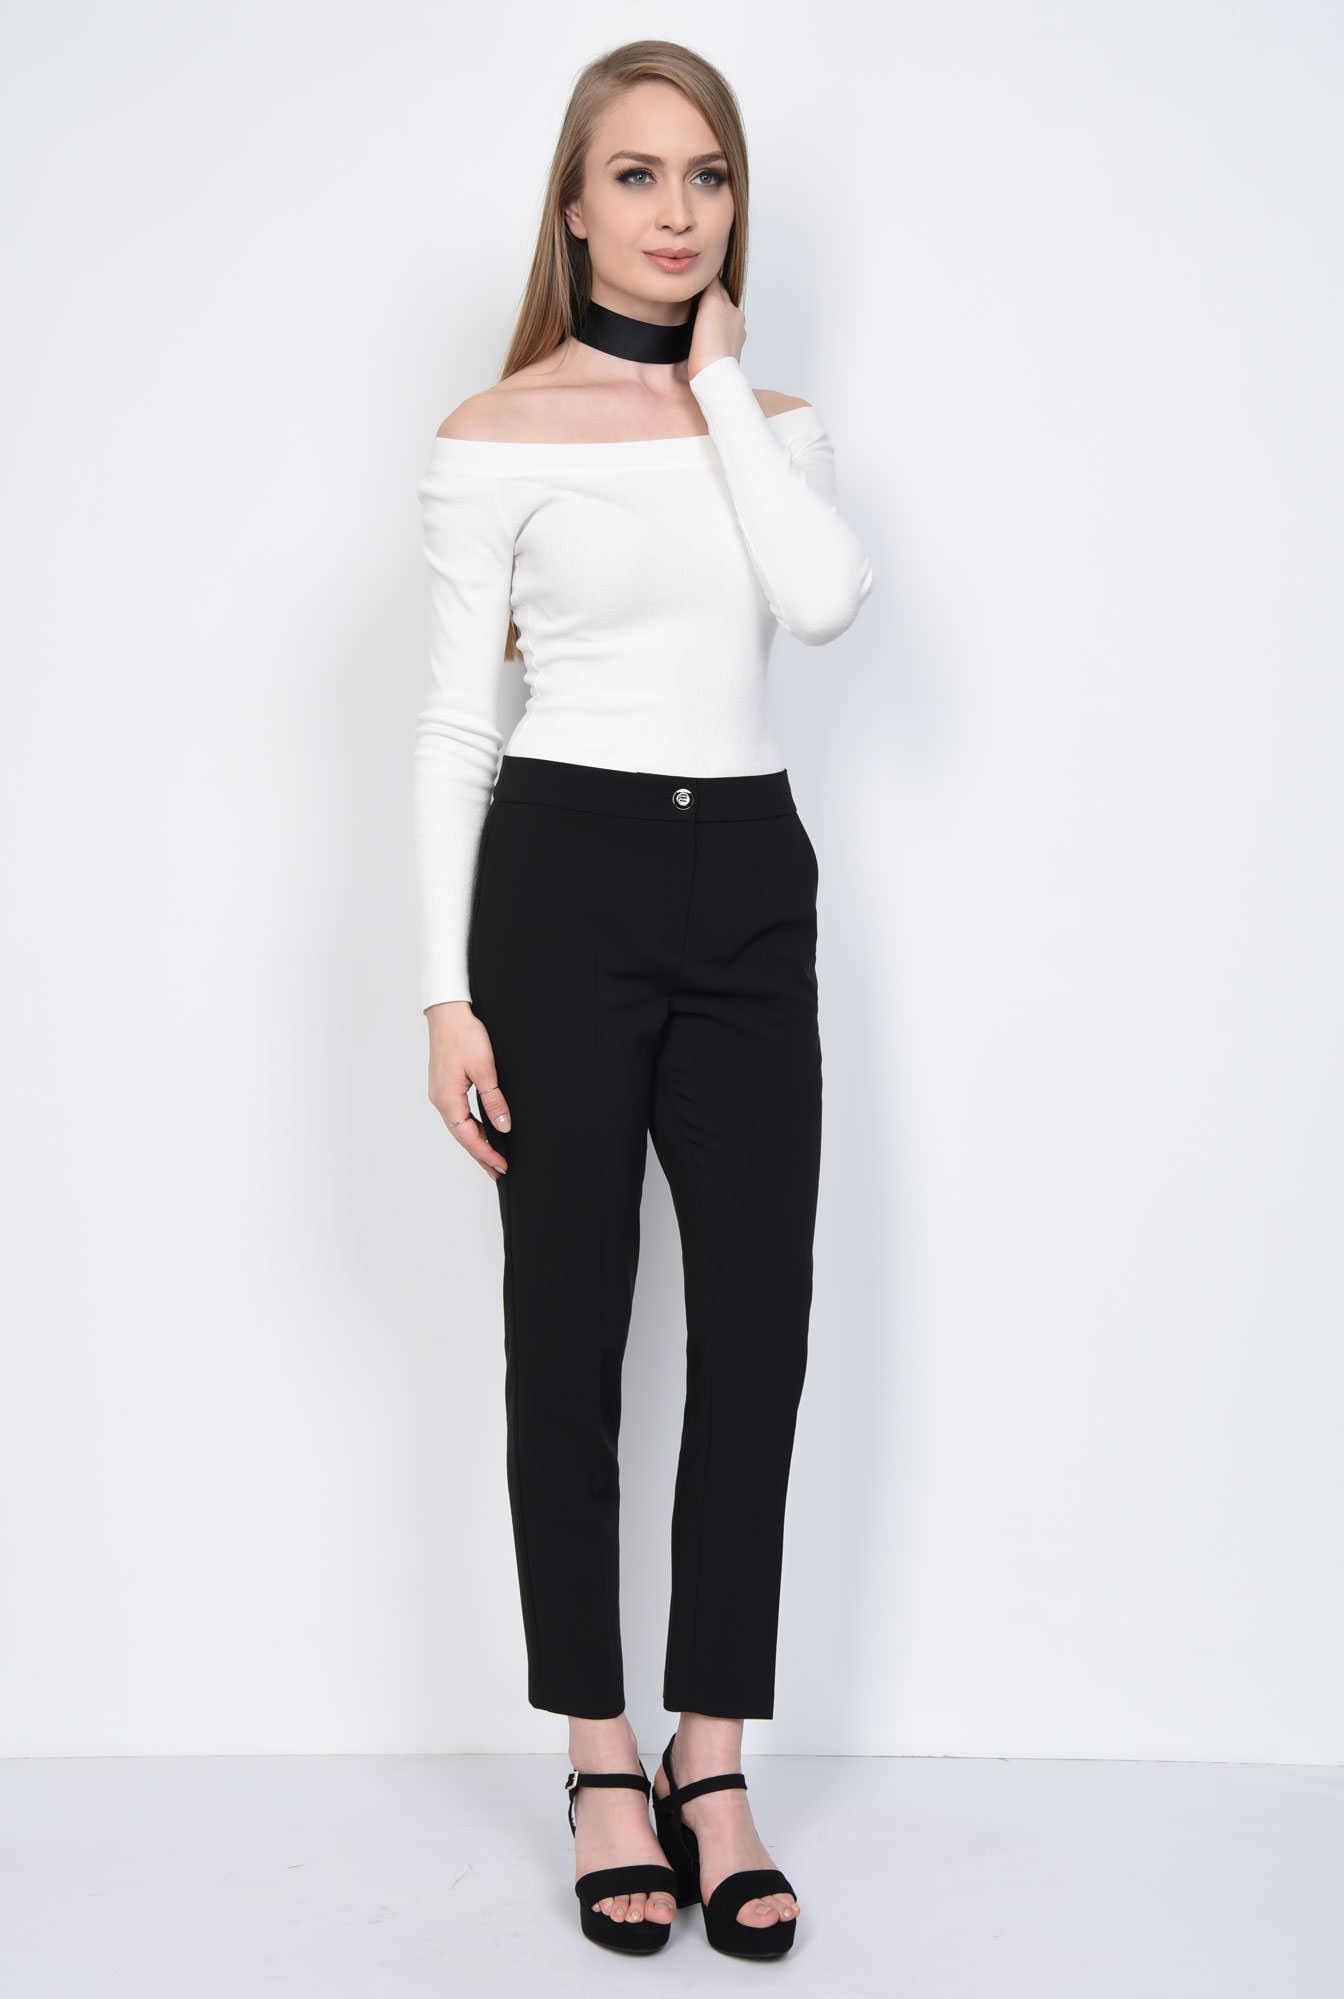 0 - PANTALON OFFICE CONIC PT 138-NEGRU